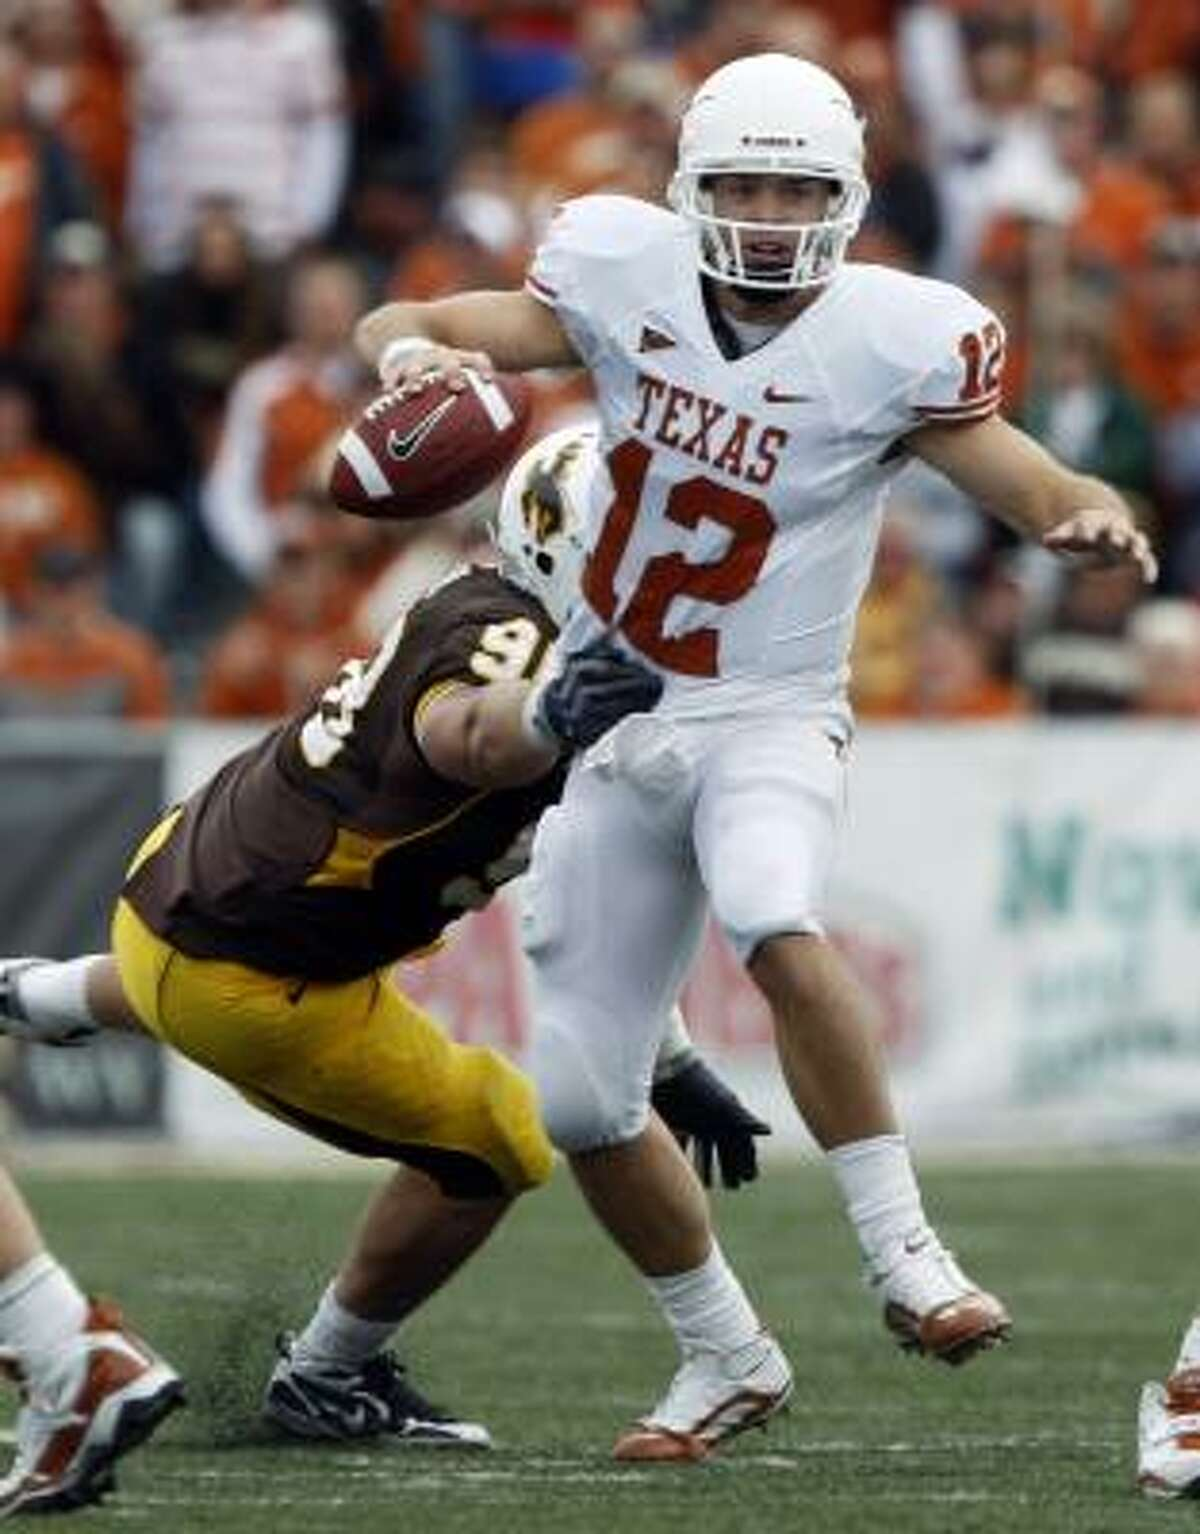 Texas quarterback Colt McCoy eludes Wyoming defensive end Mitch Unrein as he scrambles out of the pocket during the third quarter of their 41-10 victory.